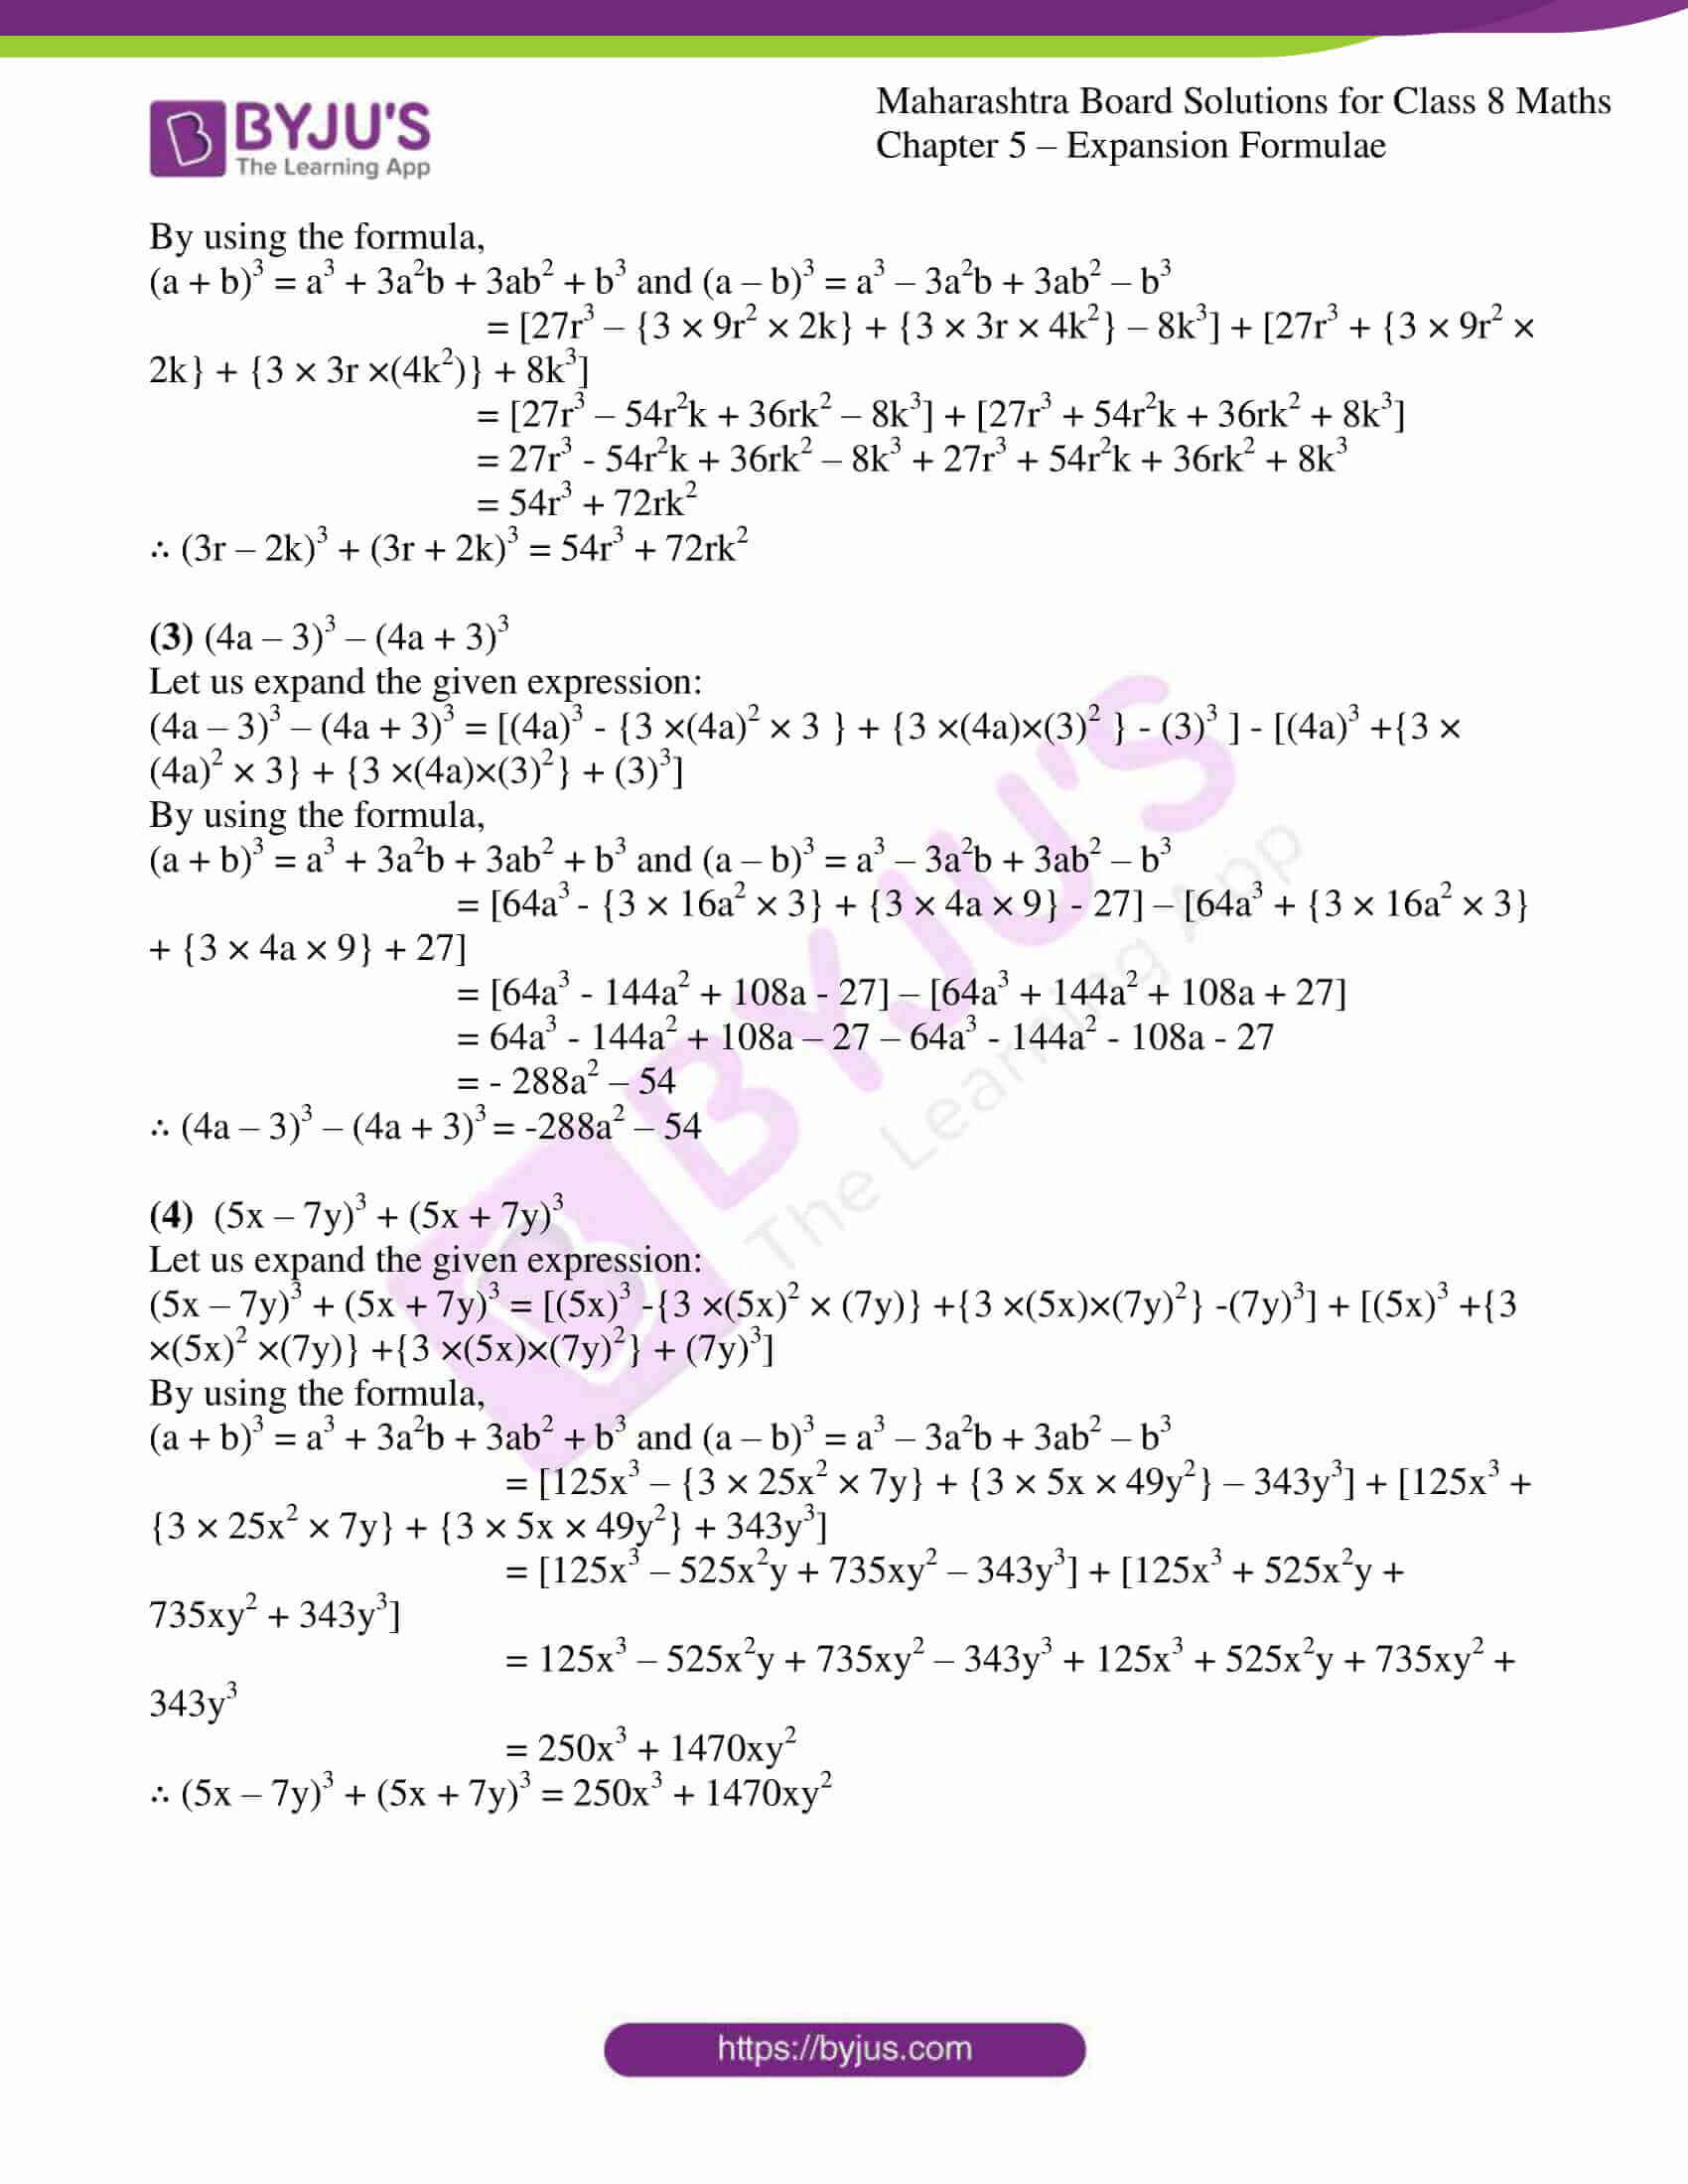 msbshse sol for class 8 maths chapter 5 13